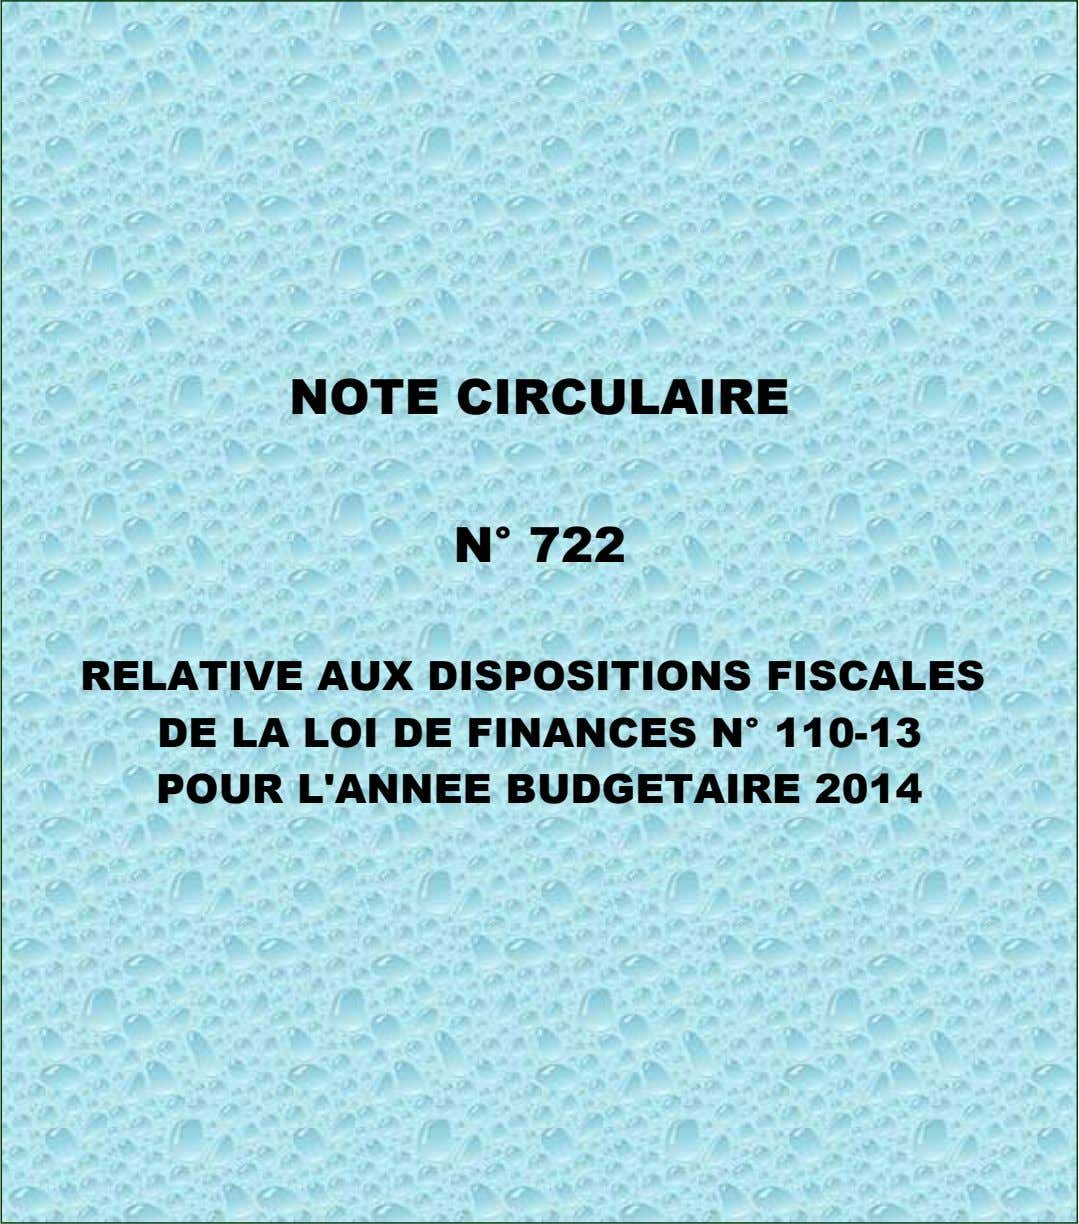 NOTE CIRCULAIRE N° 722 RELATIVE AUX DISPOSITIONS FISCALES DE LA LOI DE FINANCES N° 110-13